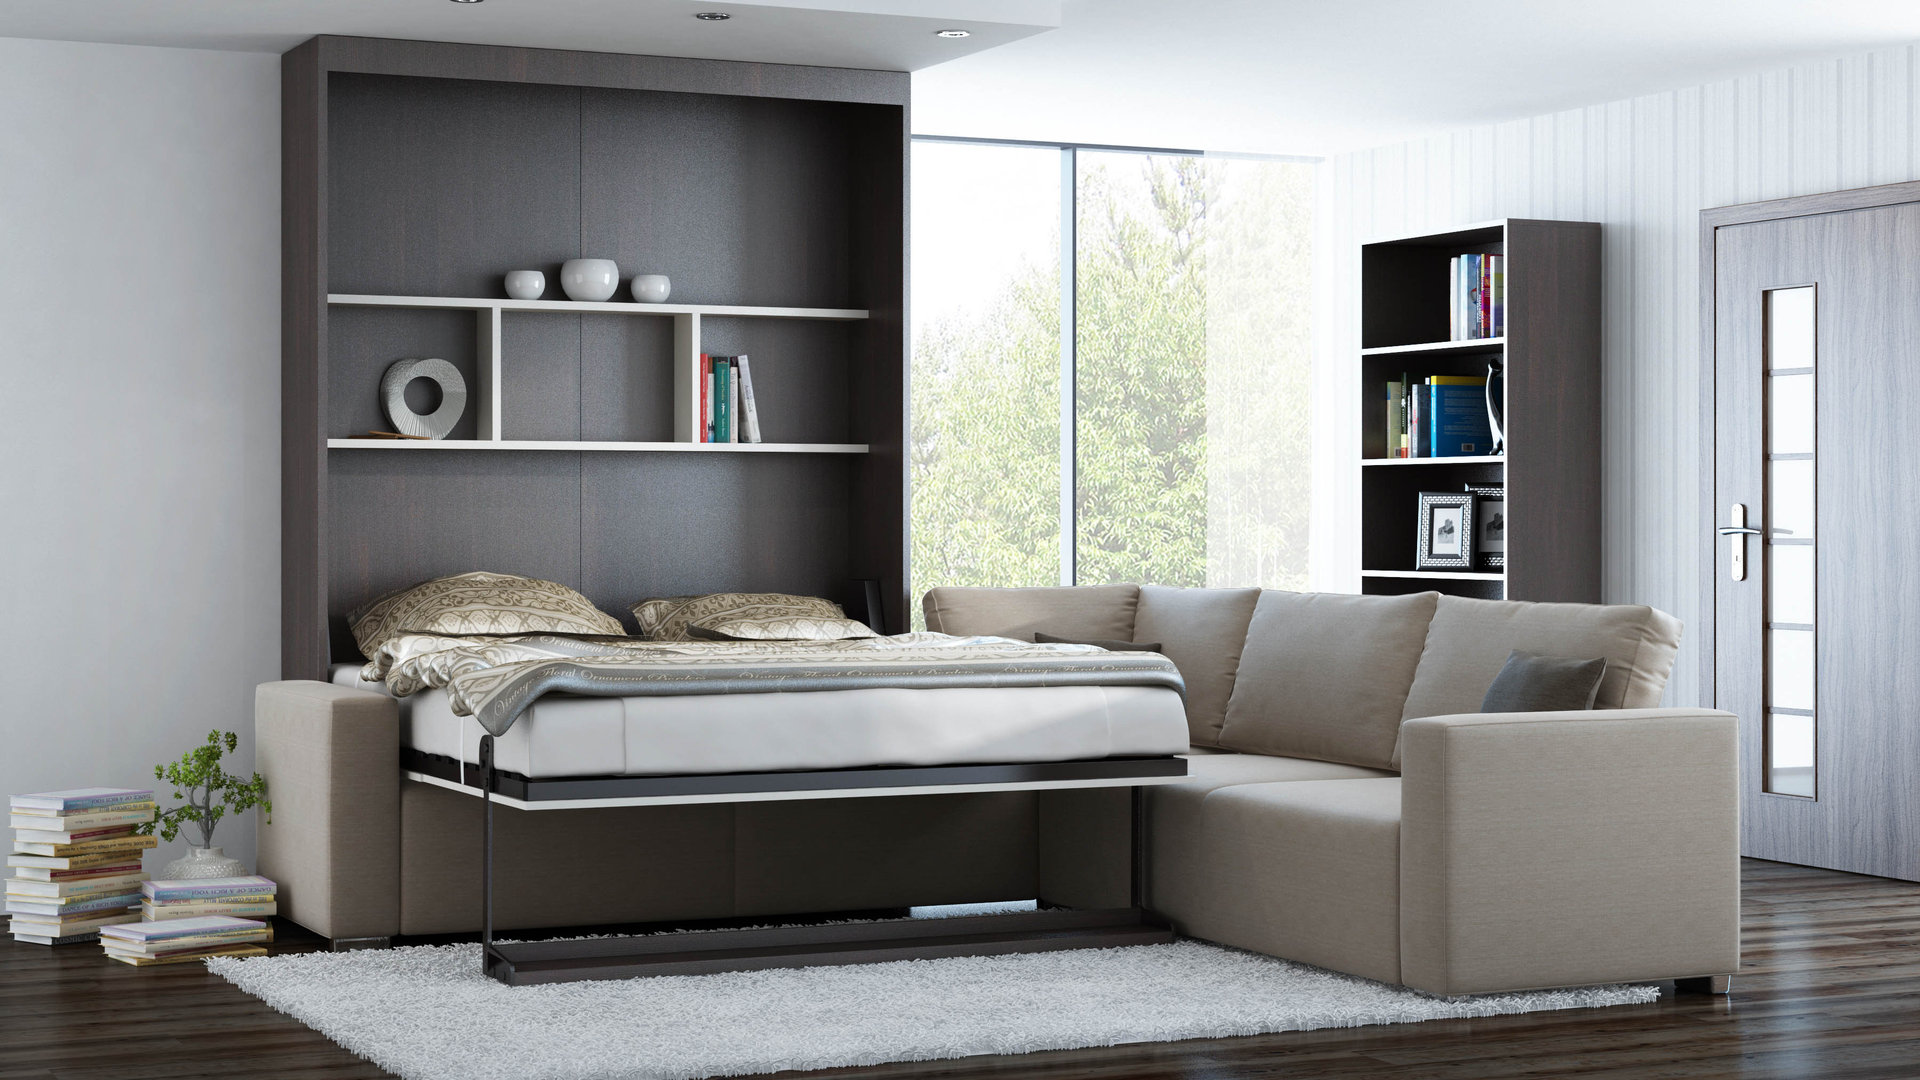 ts m bel wandbett mit sofa ecke leggio linea std std 140 x 200 cm. Black Bedroom Furniture Sets. Home Design Ideas